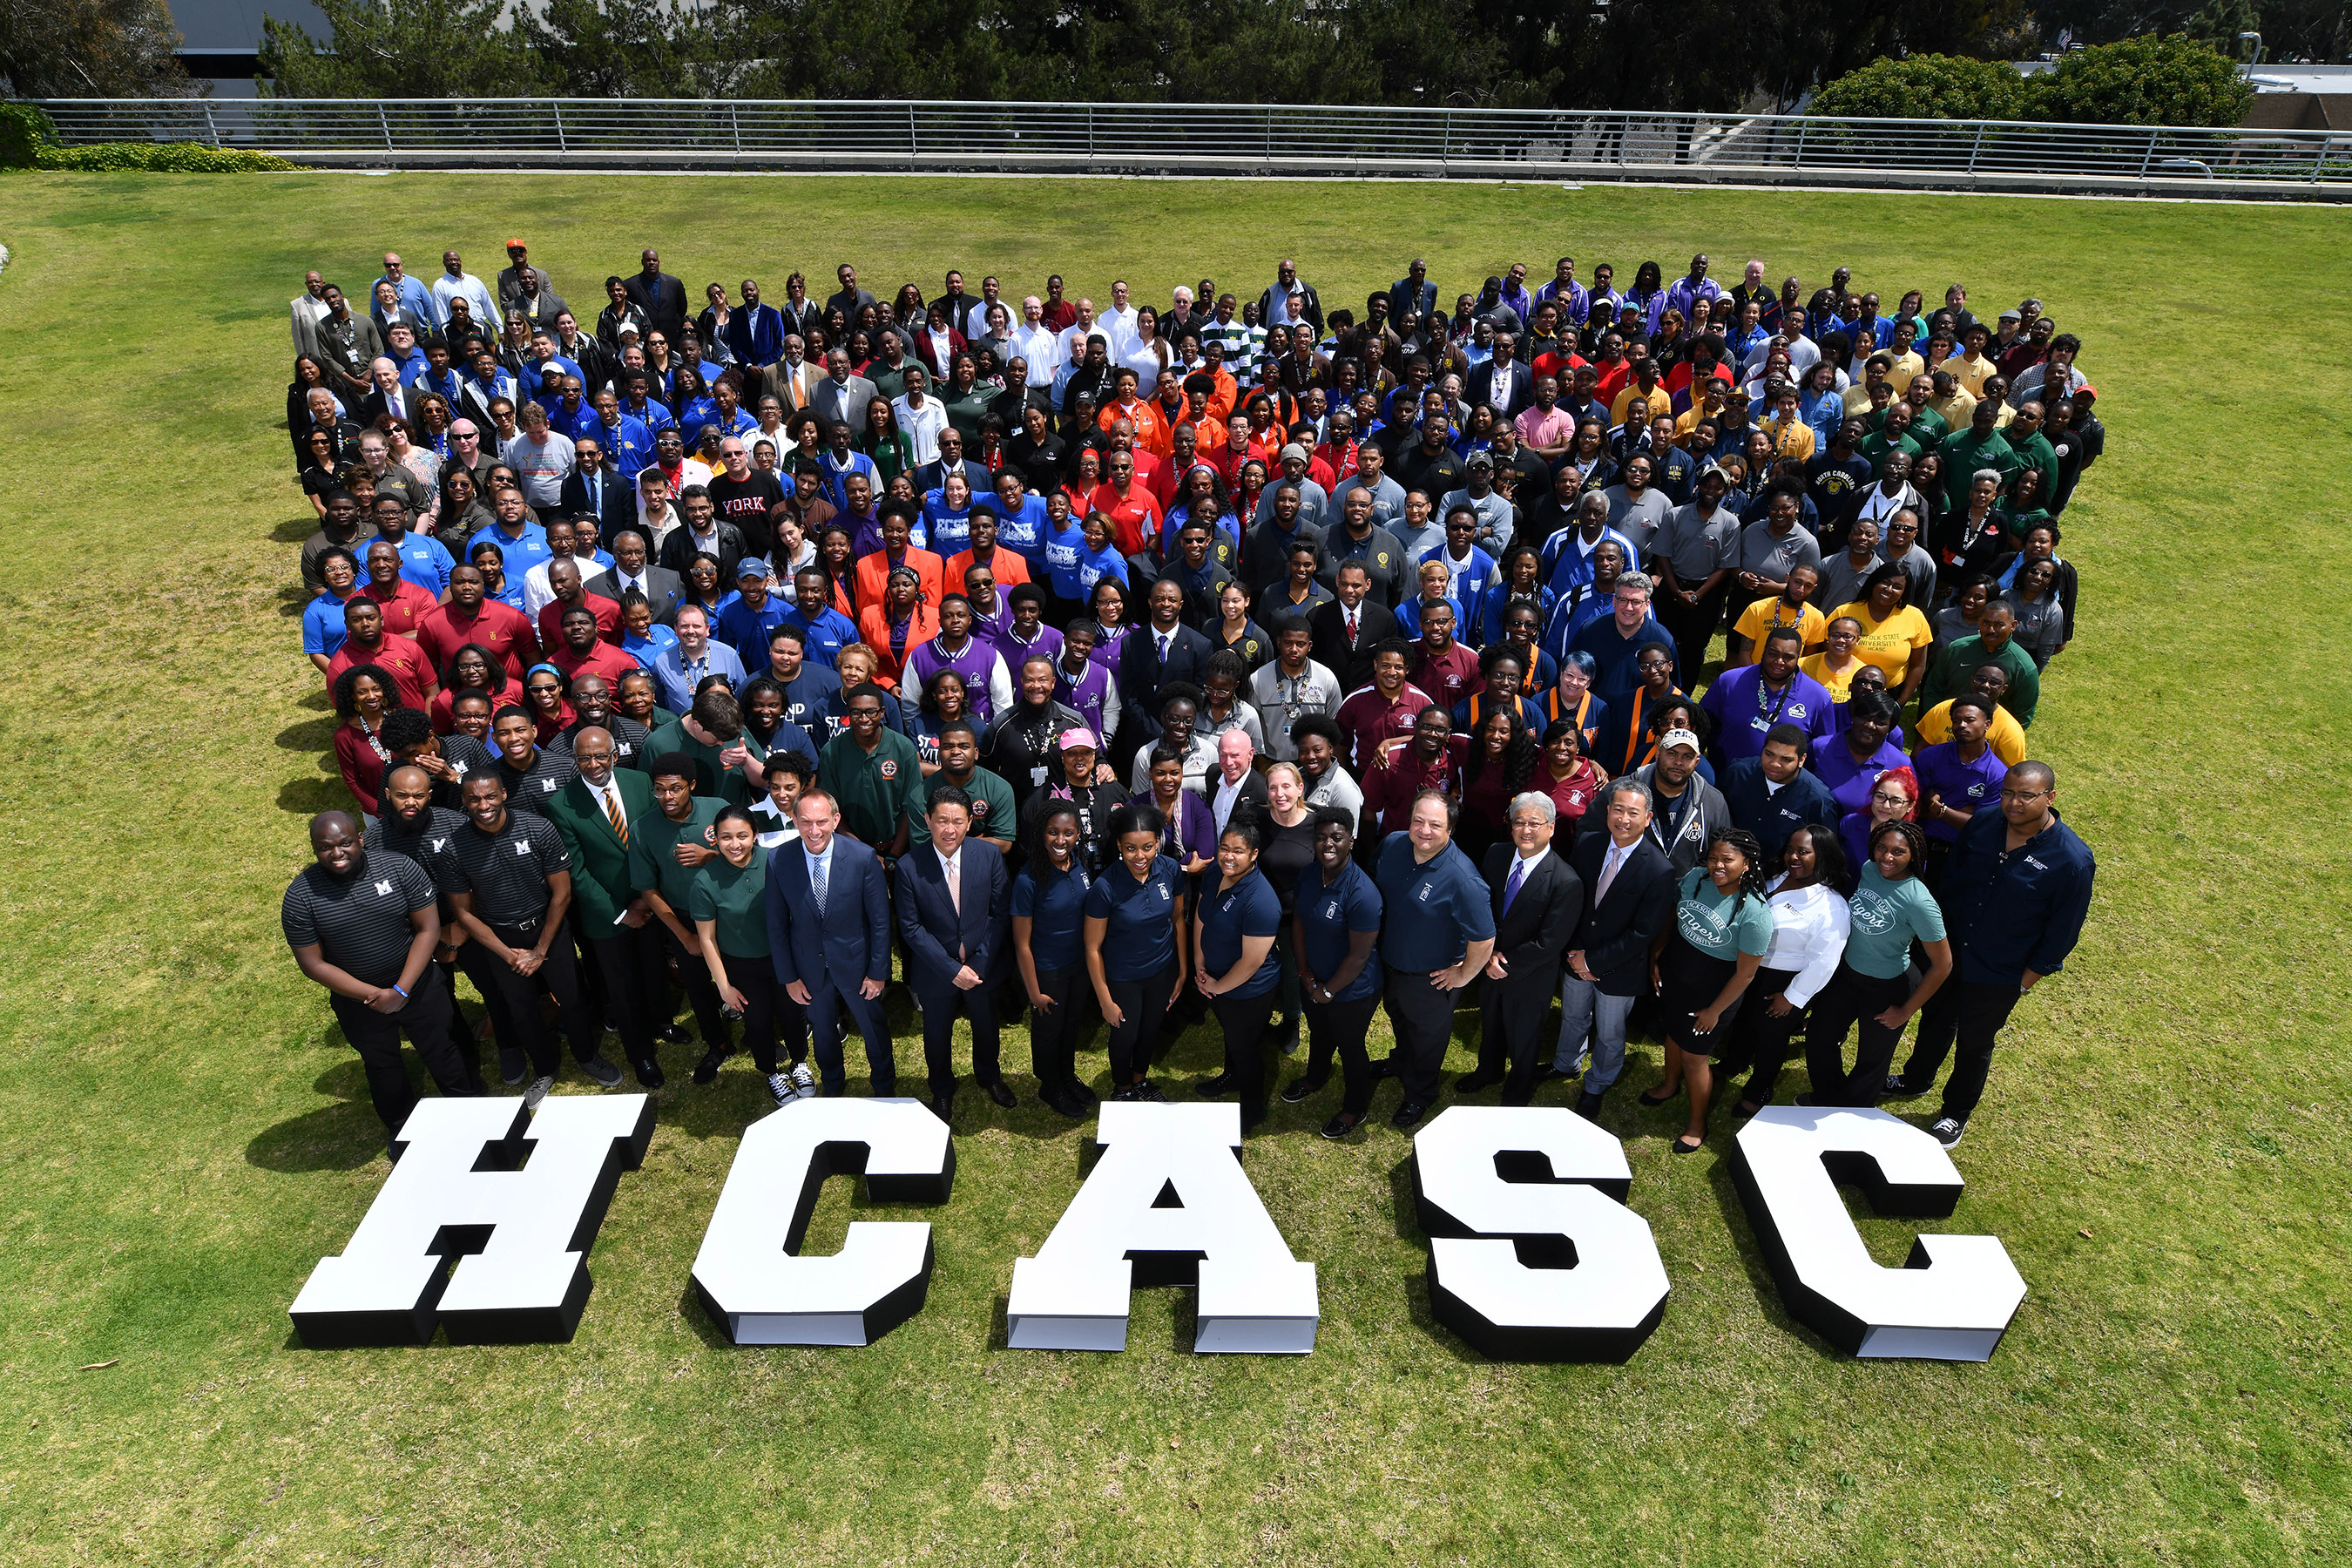 More than 300 HBCU students, presidents and institutional representatives participated in and attended the 2019 Honda Campus All-Star Challenge National Championship Tournament in Los Angeles.